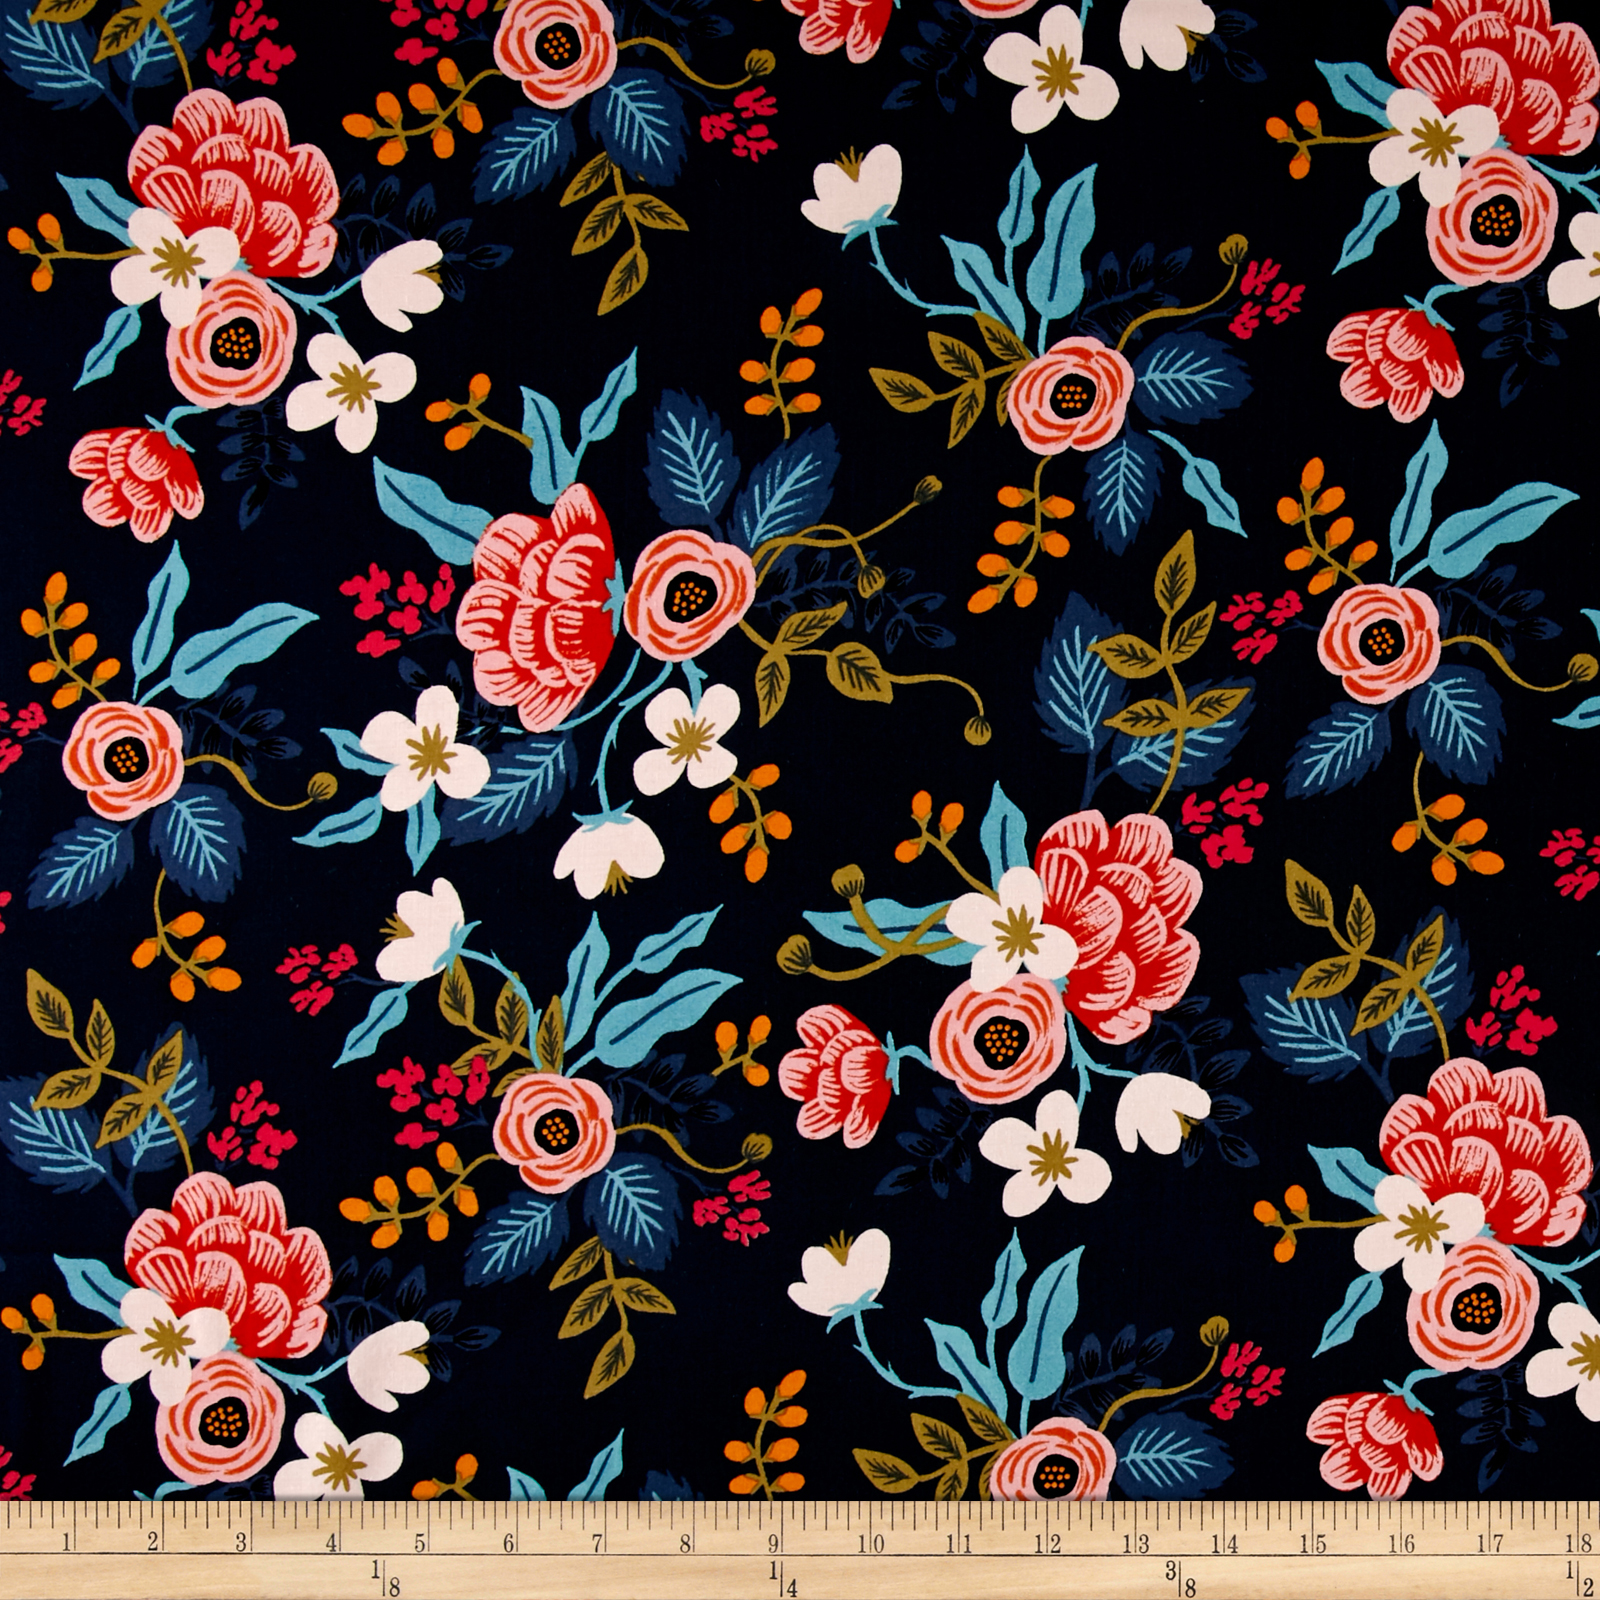 Image of Cotton + Steel Rifle Paper Co. Les Fleurs Rayon Challis Birch Floral Navy Fabric